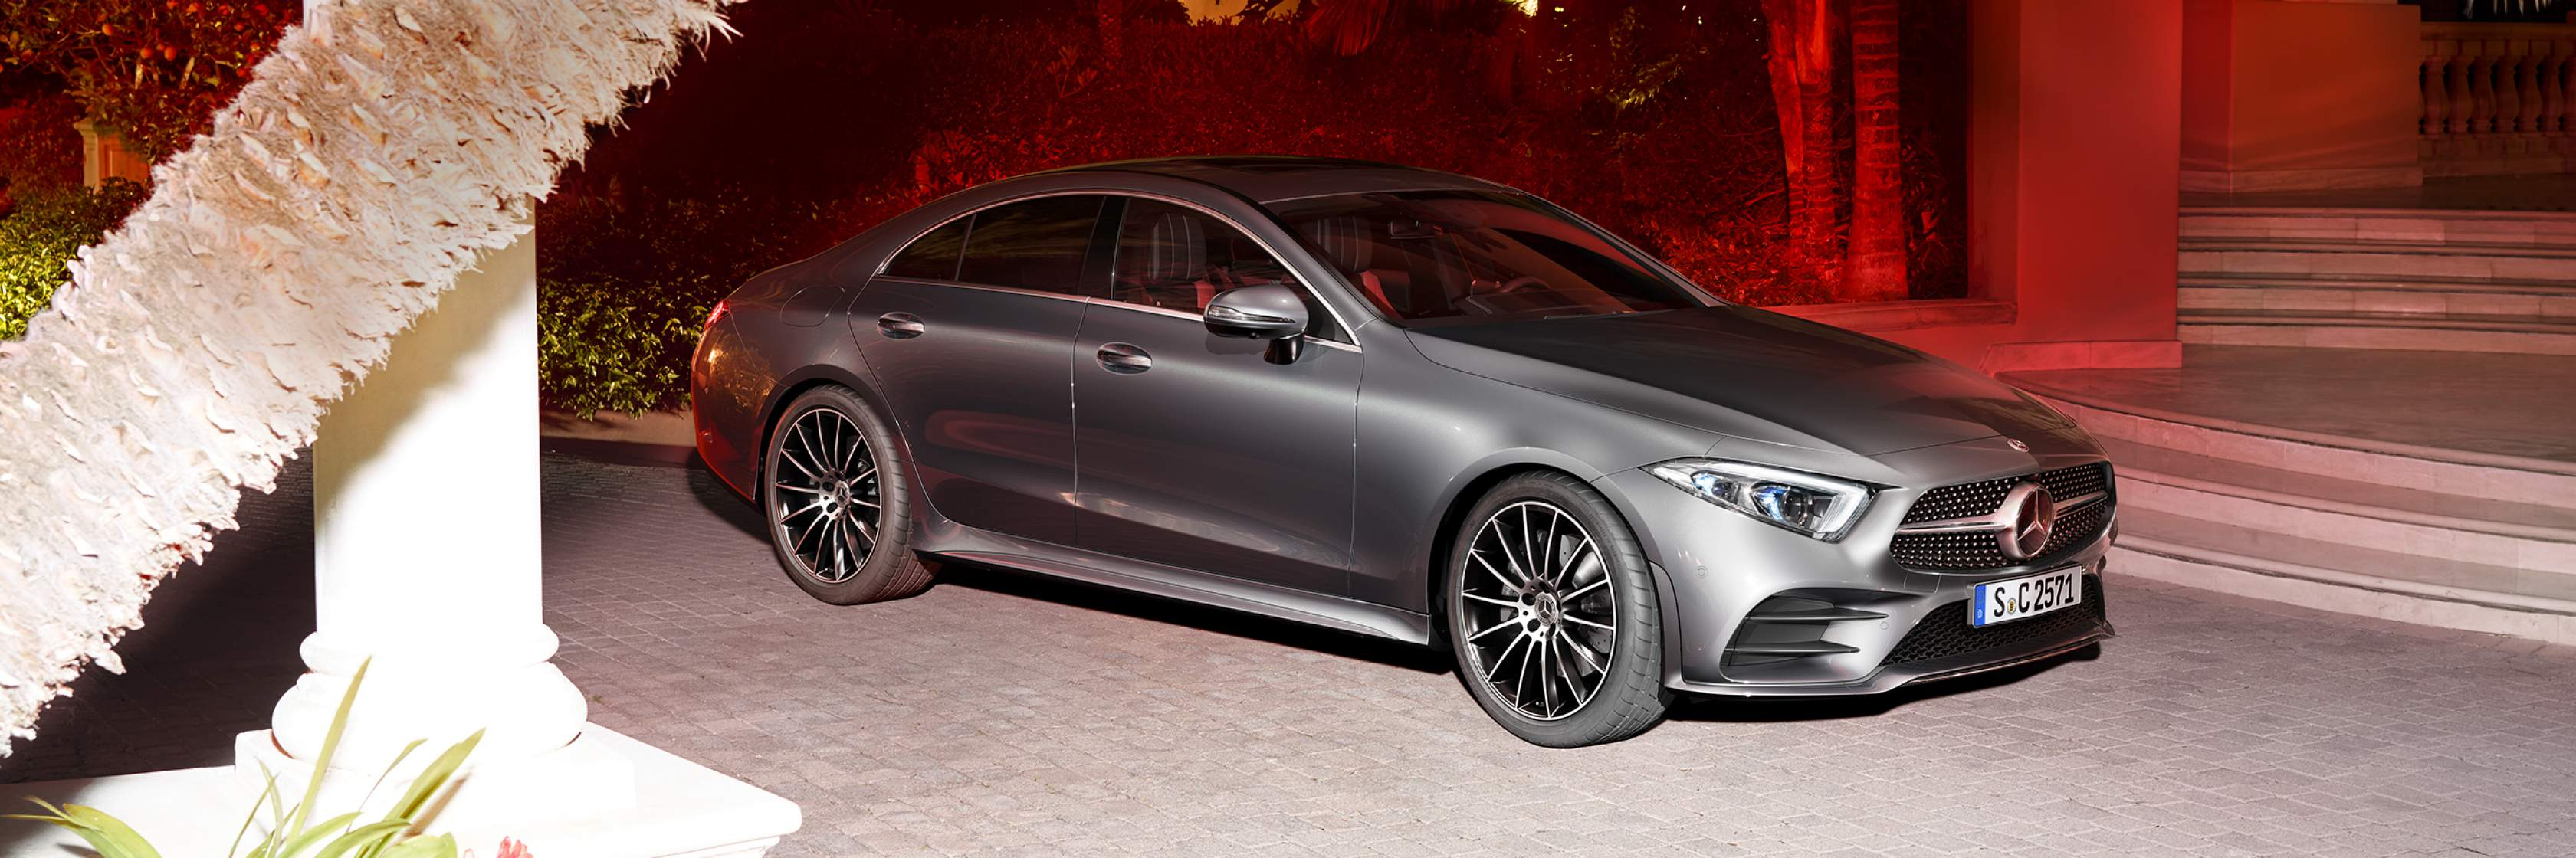 Інтер'єр та екстер'єр Mercedes–Benz CLS Coupe